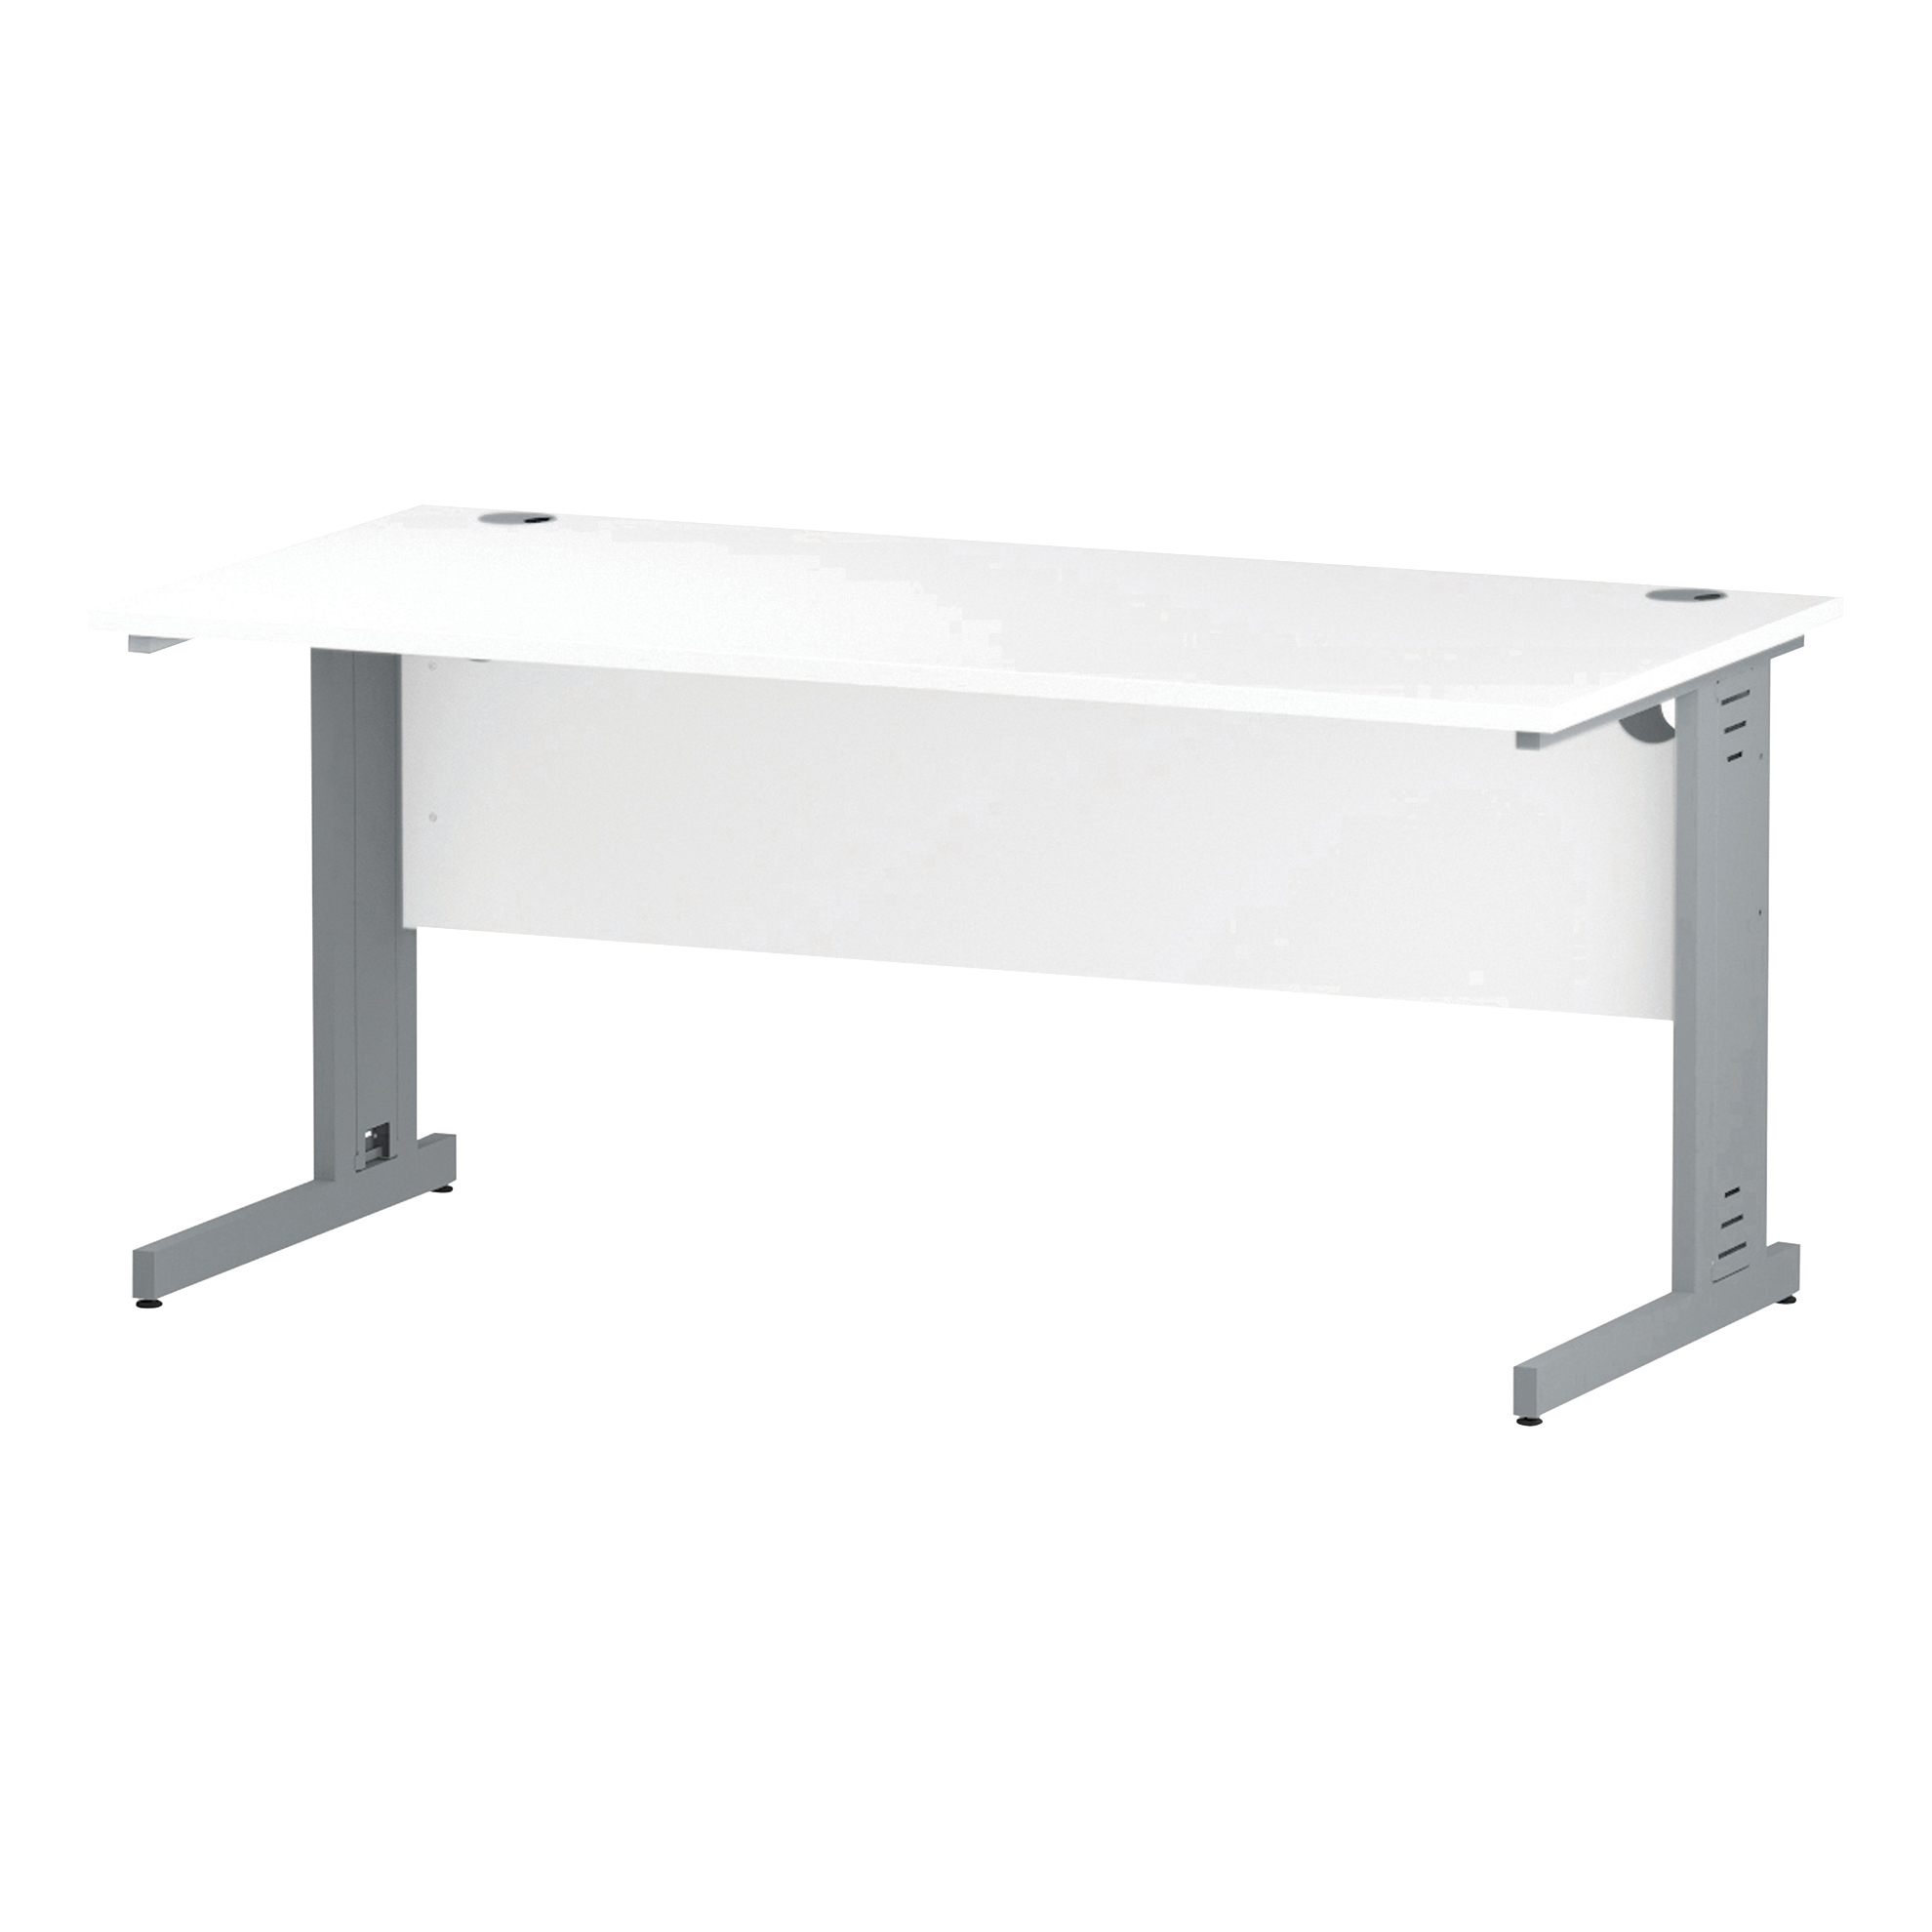 Trexus Rectangular Desk Silver Cable Managed Leg 1600x800mm White Ref I000480